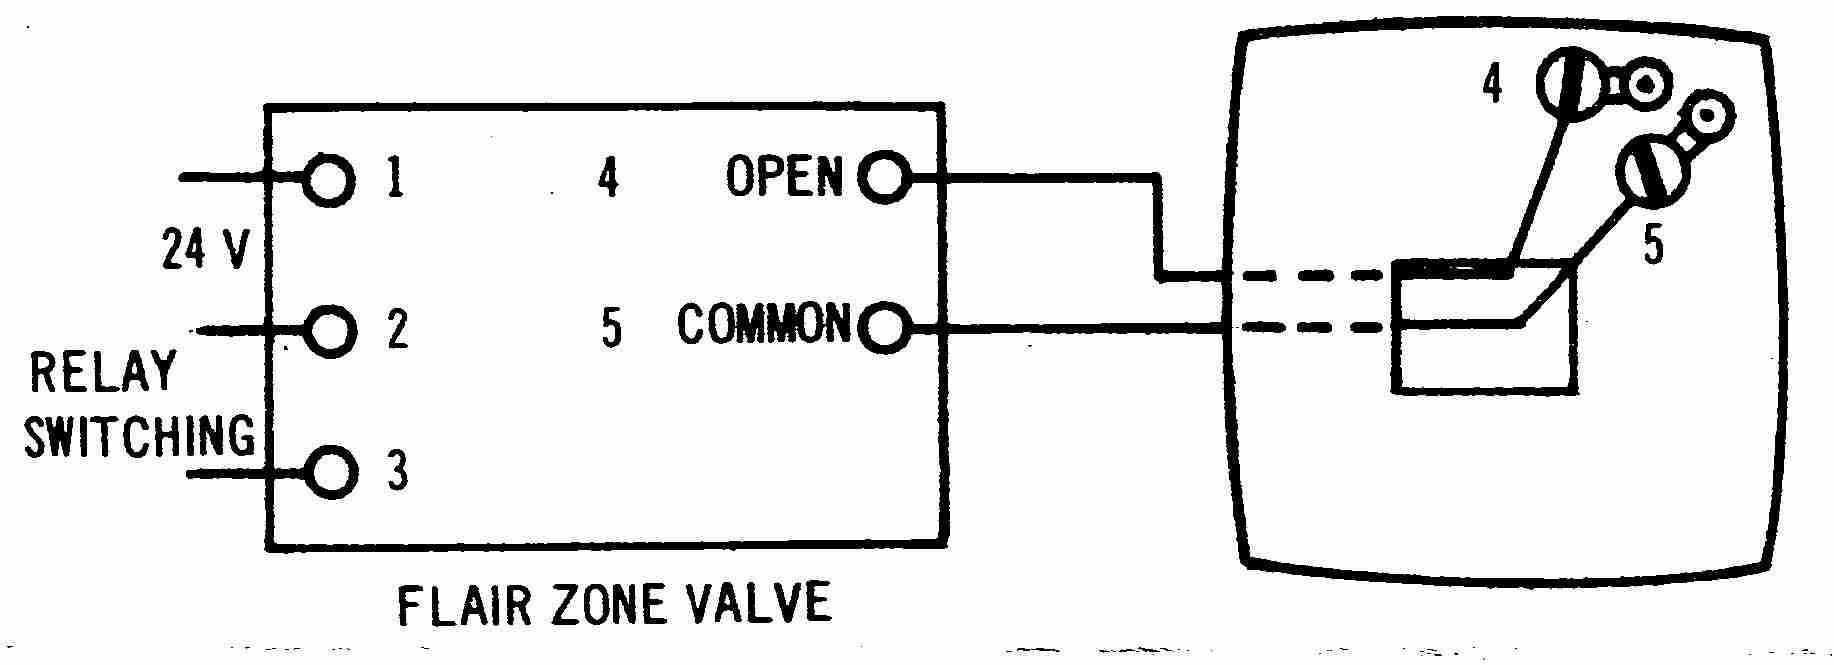 Coleman Mach Thermostat Wiring Diagram as well Watch besides Thermostat Diagrams moreover Watch moreover Street Rod Air Conditioning Wiring Diagram. on carrier hvac wiring diagrams